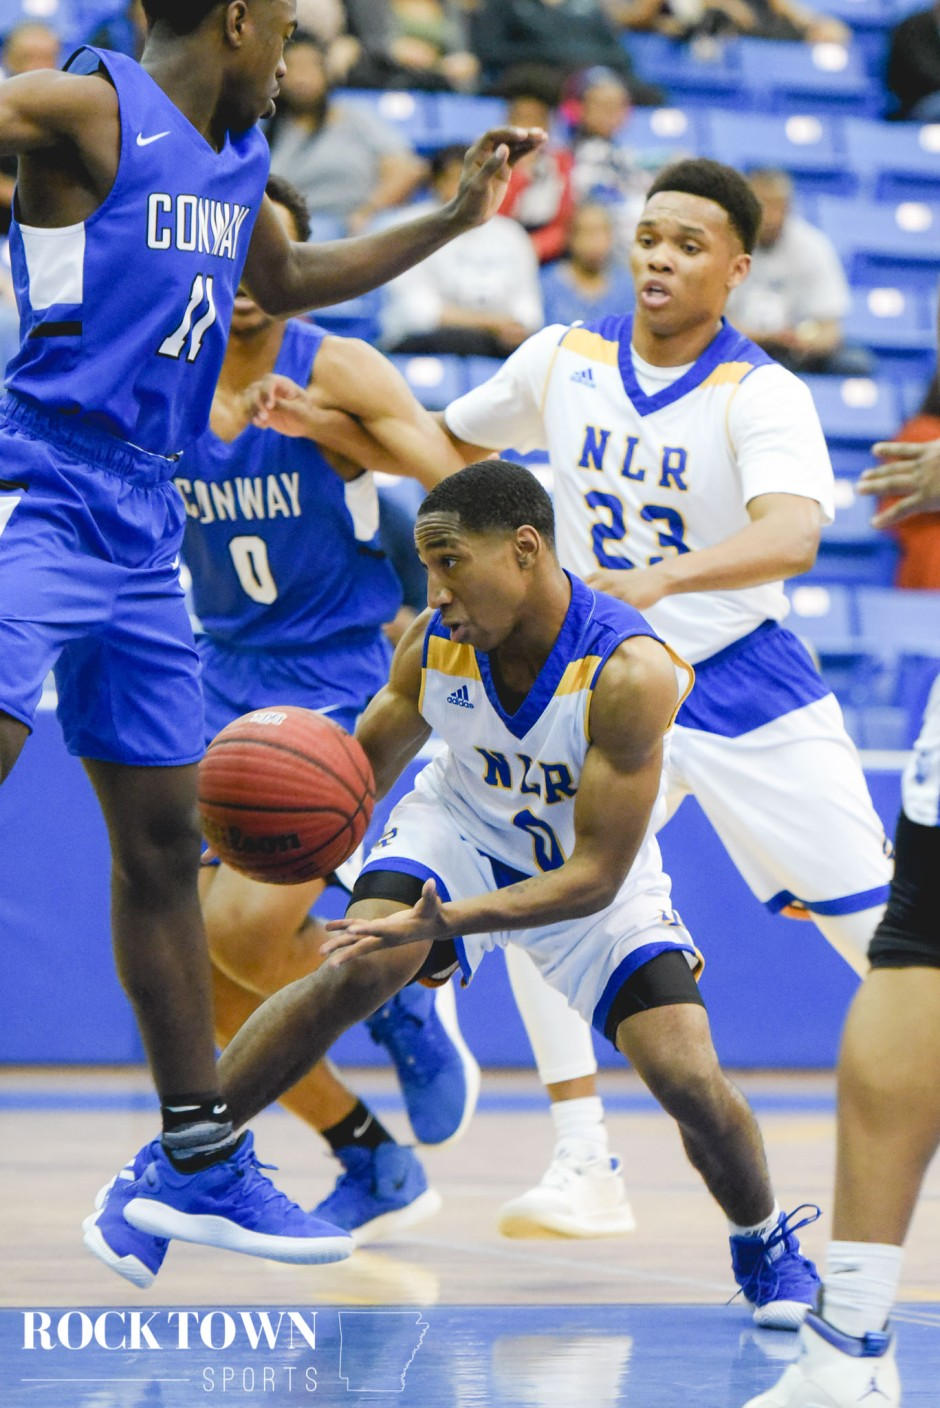 Conway_NLR_bball19(i)-50